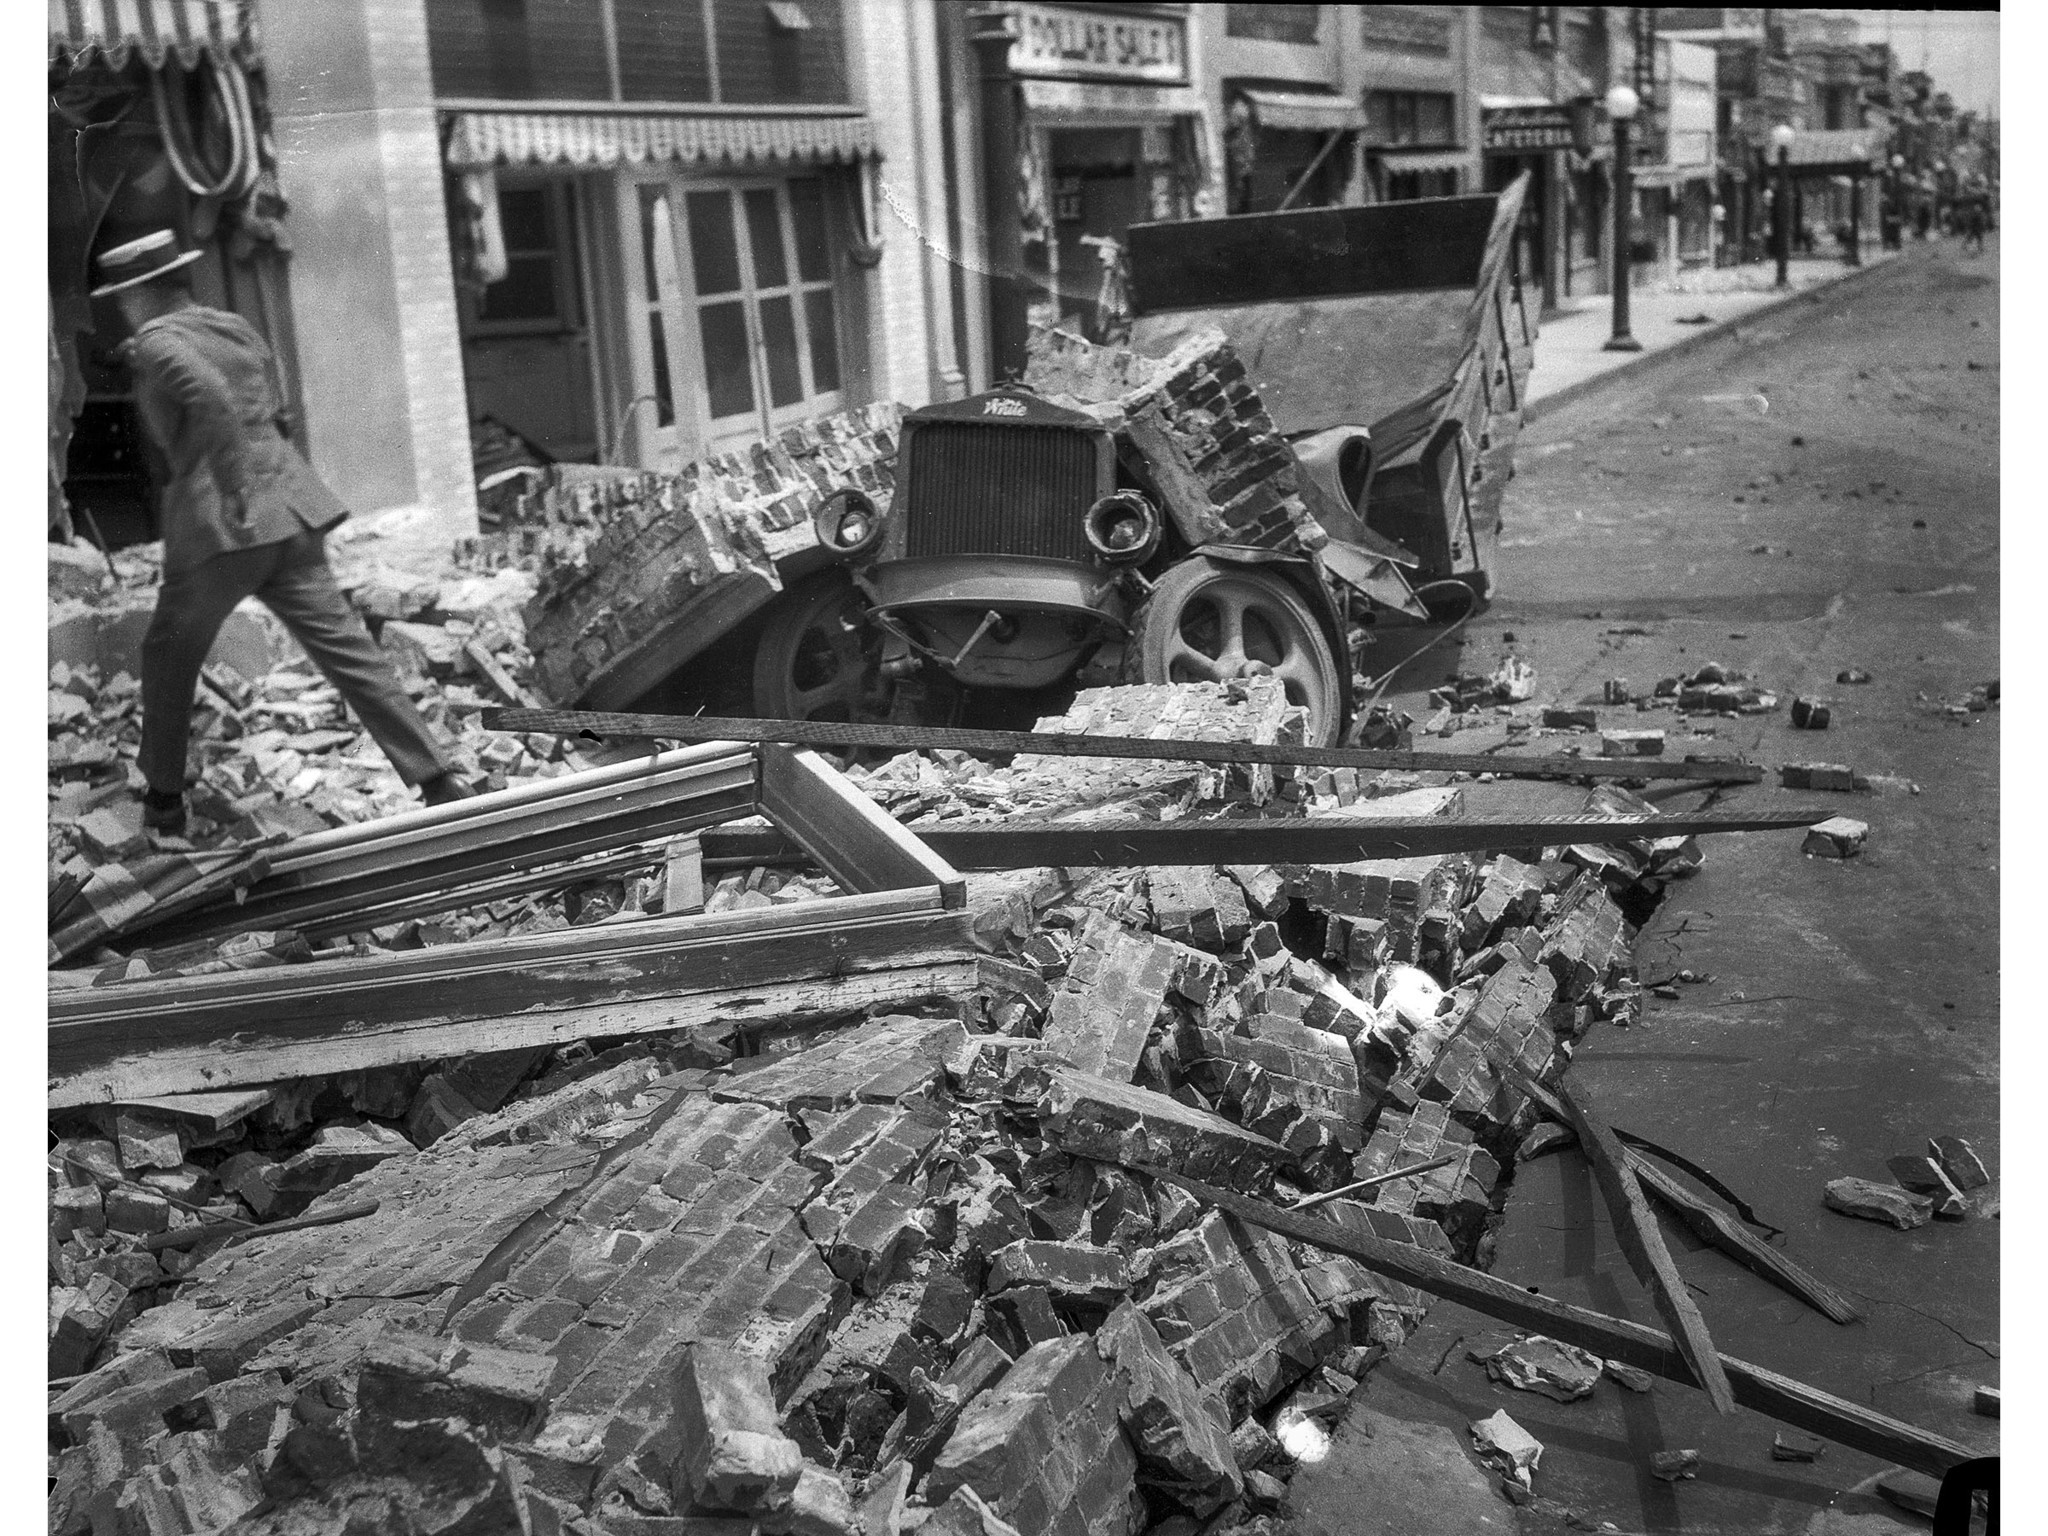 June 29, 1925: Truck crushed by falling brick walls on State Street in Santa Barbara following the 6